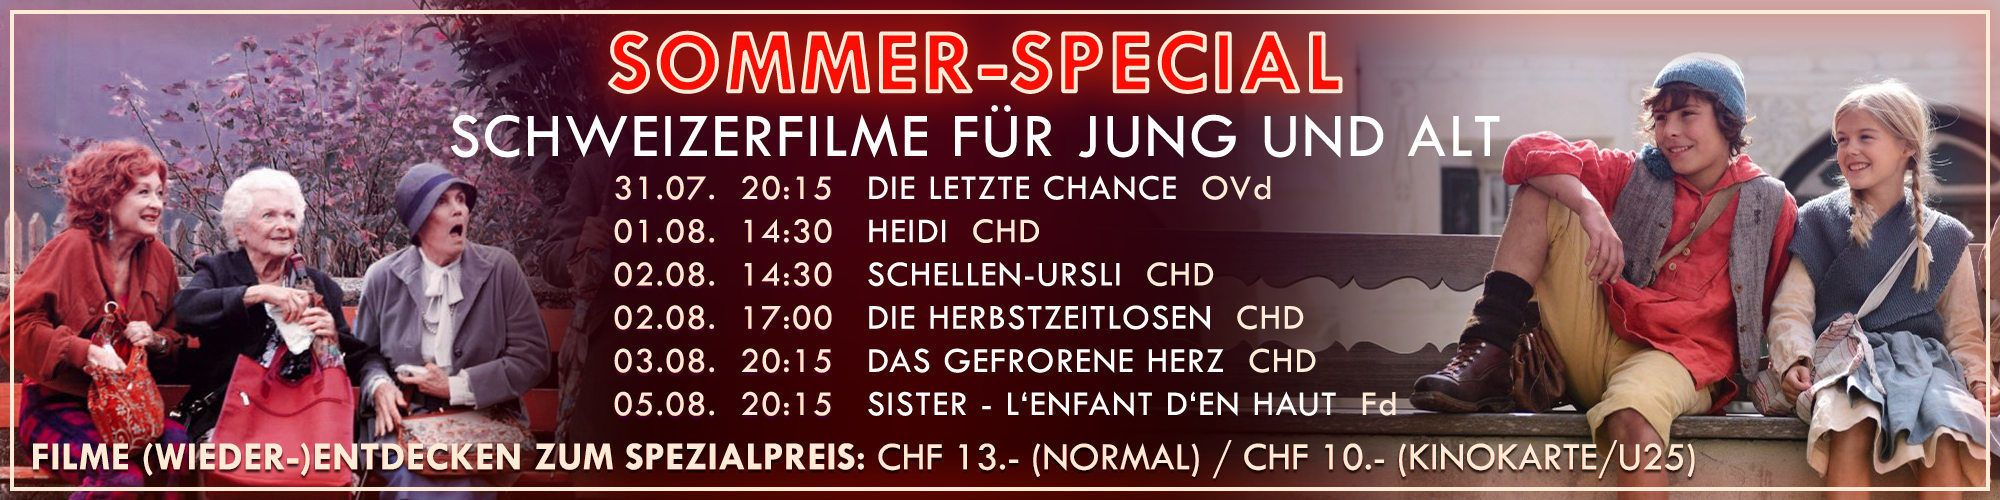 Sommer-Special_CH2